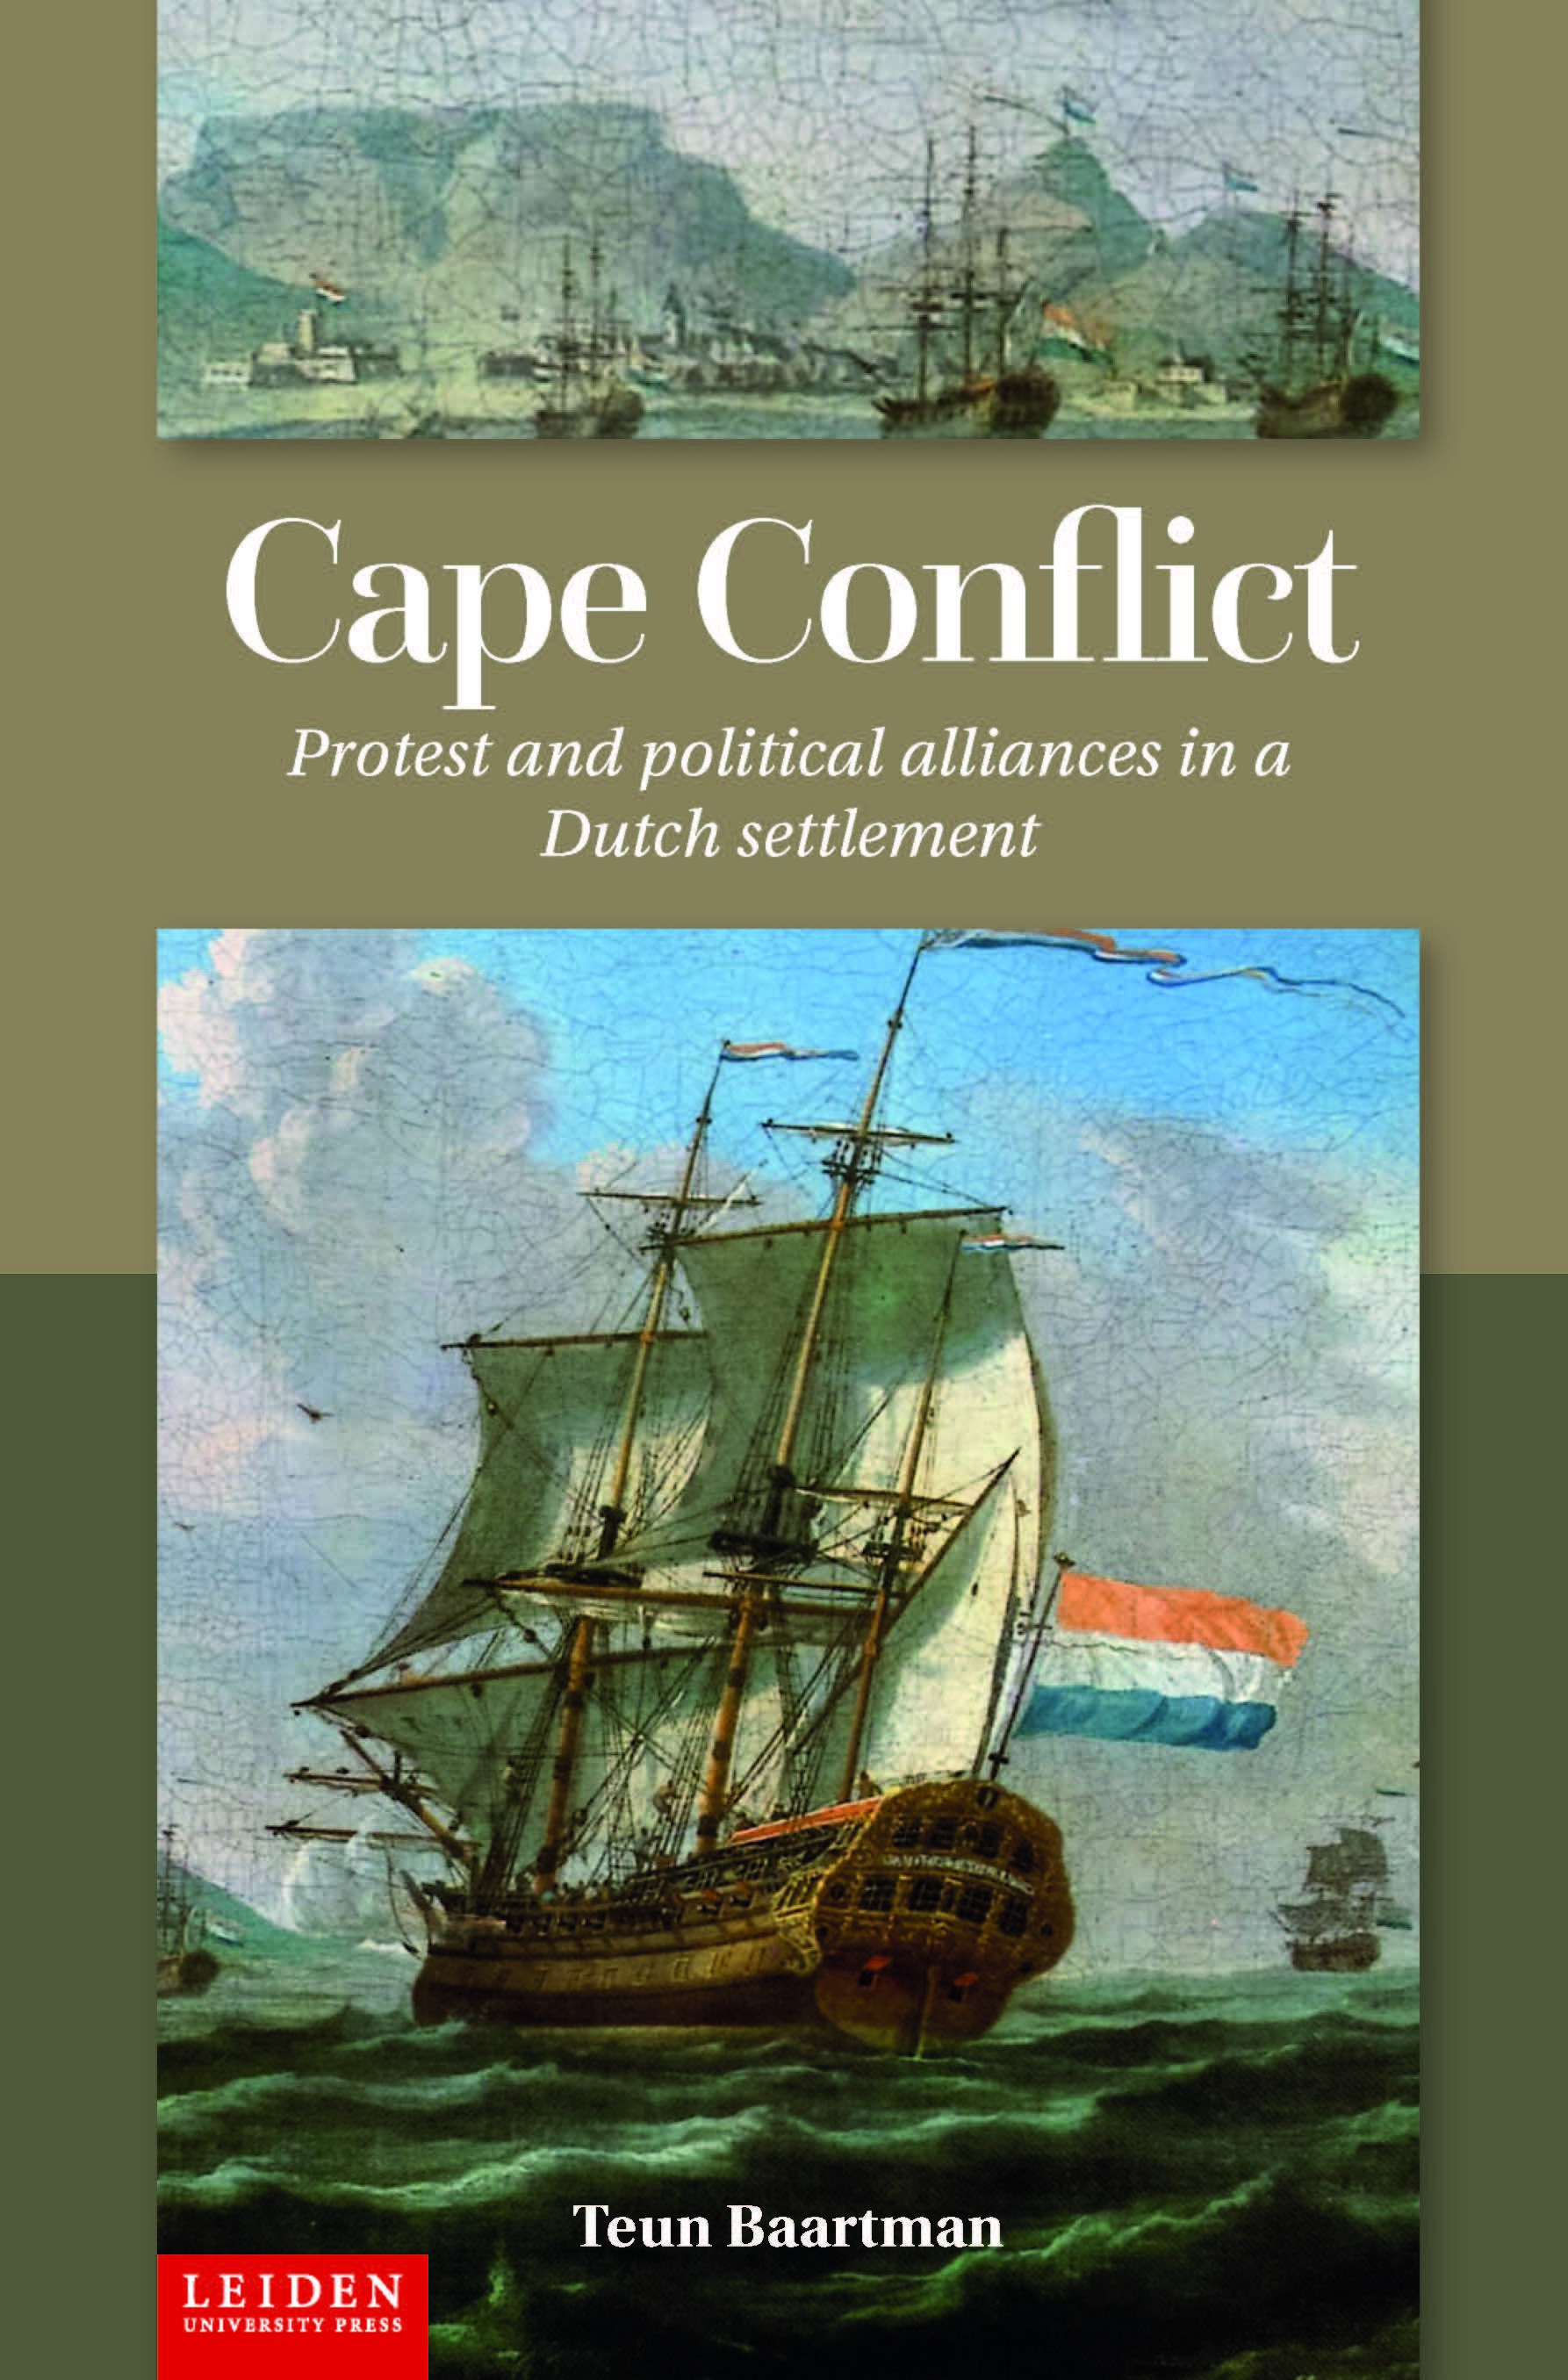 Cape Conflict cover chosen Leiden UP